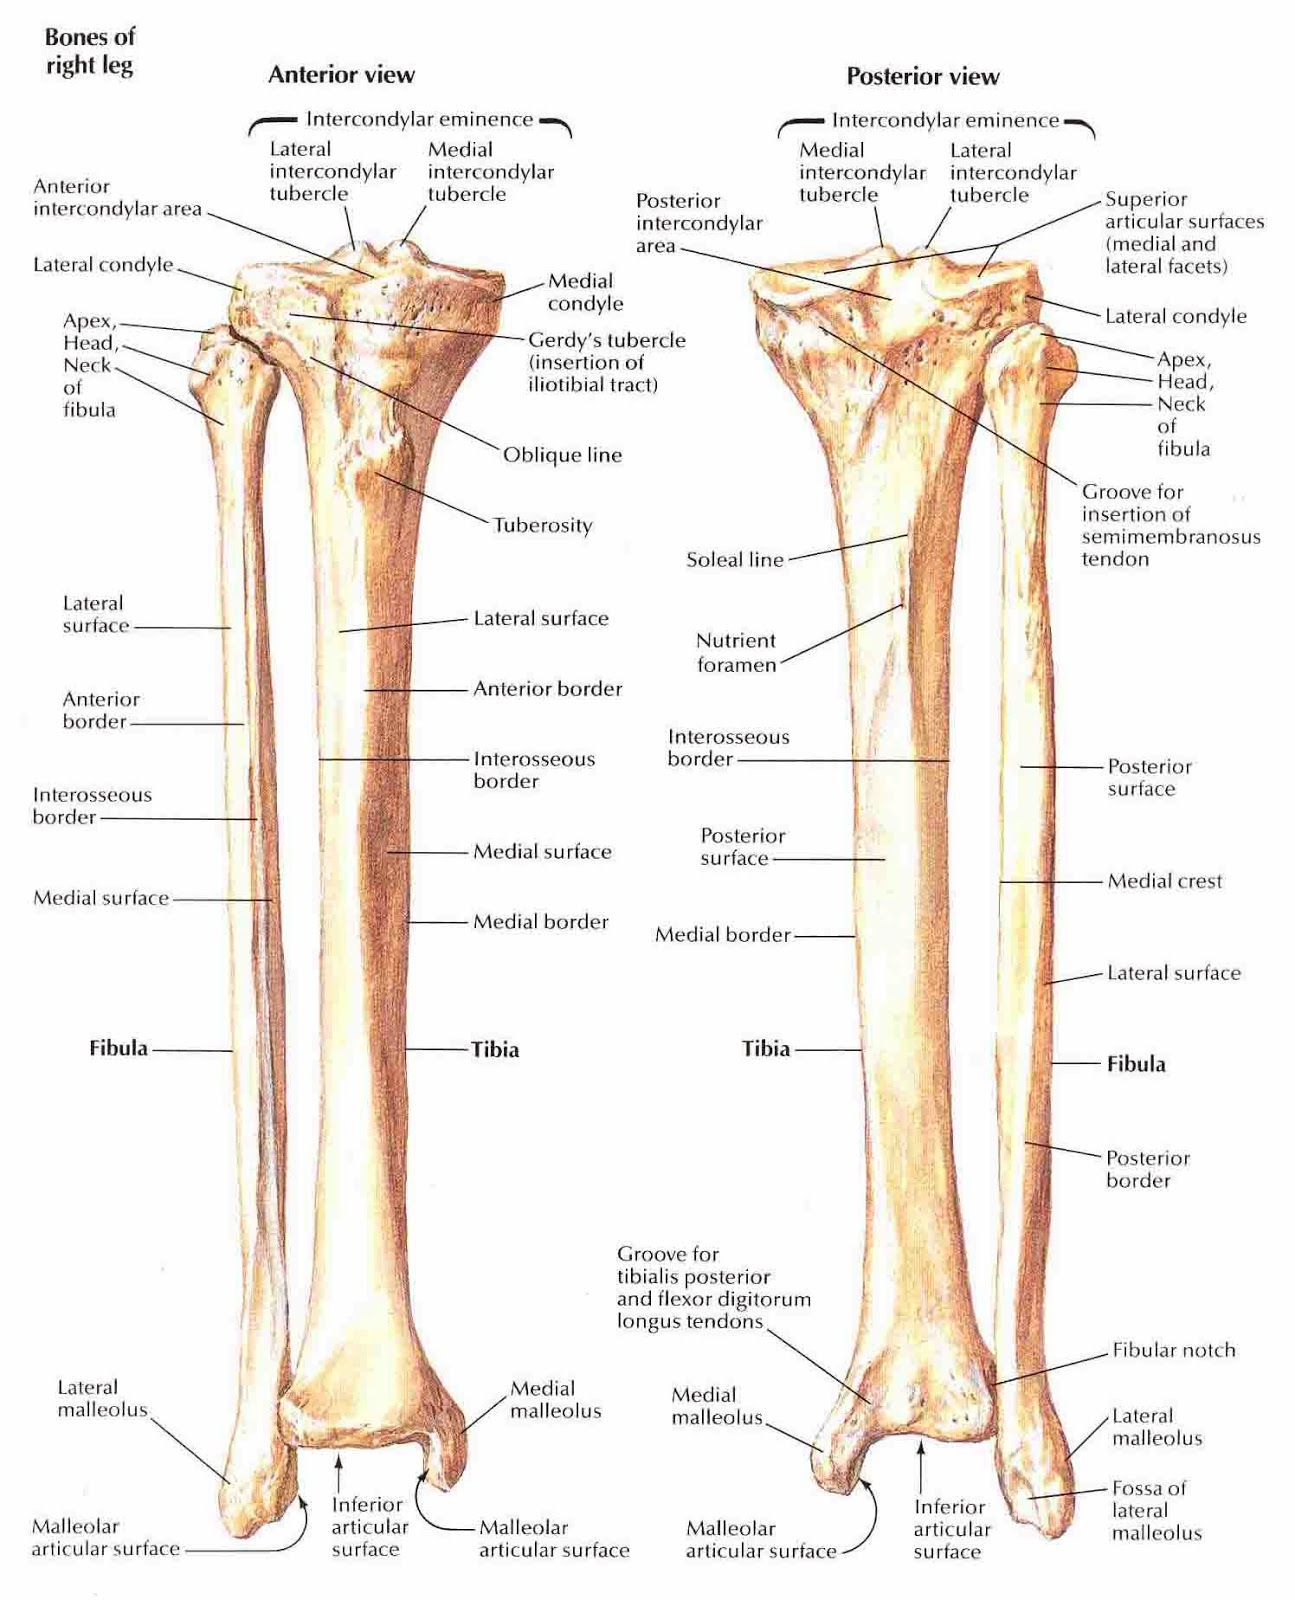 biology diagrams,images,pictures of human anatomy and physiology Fibula Bone Anatomy Diagram